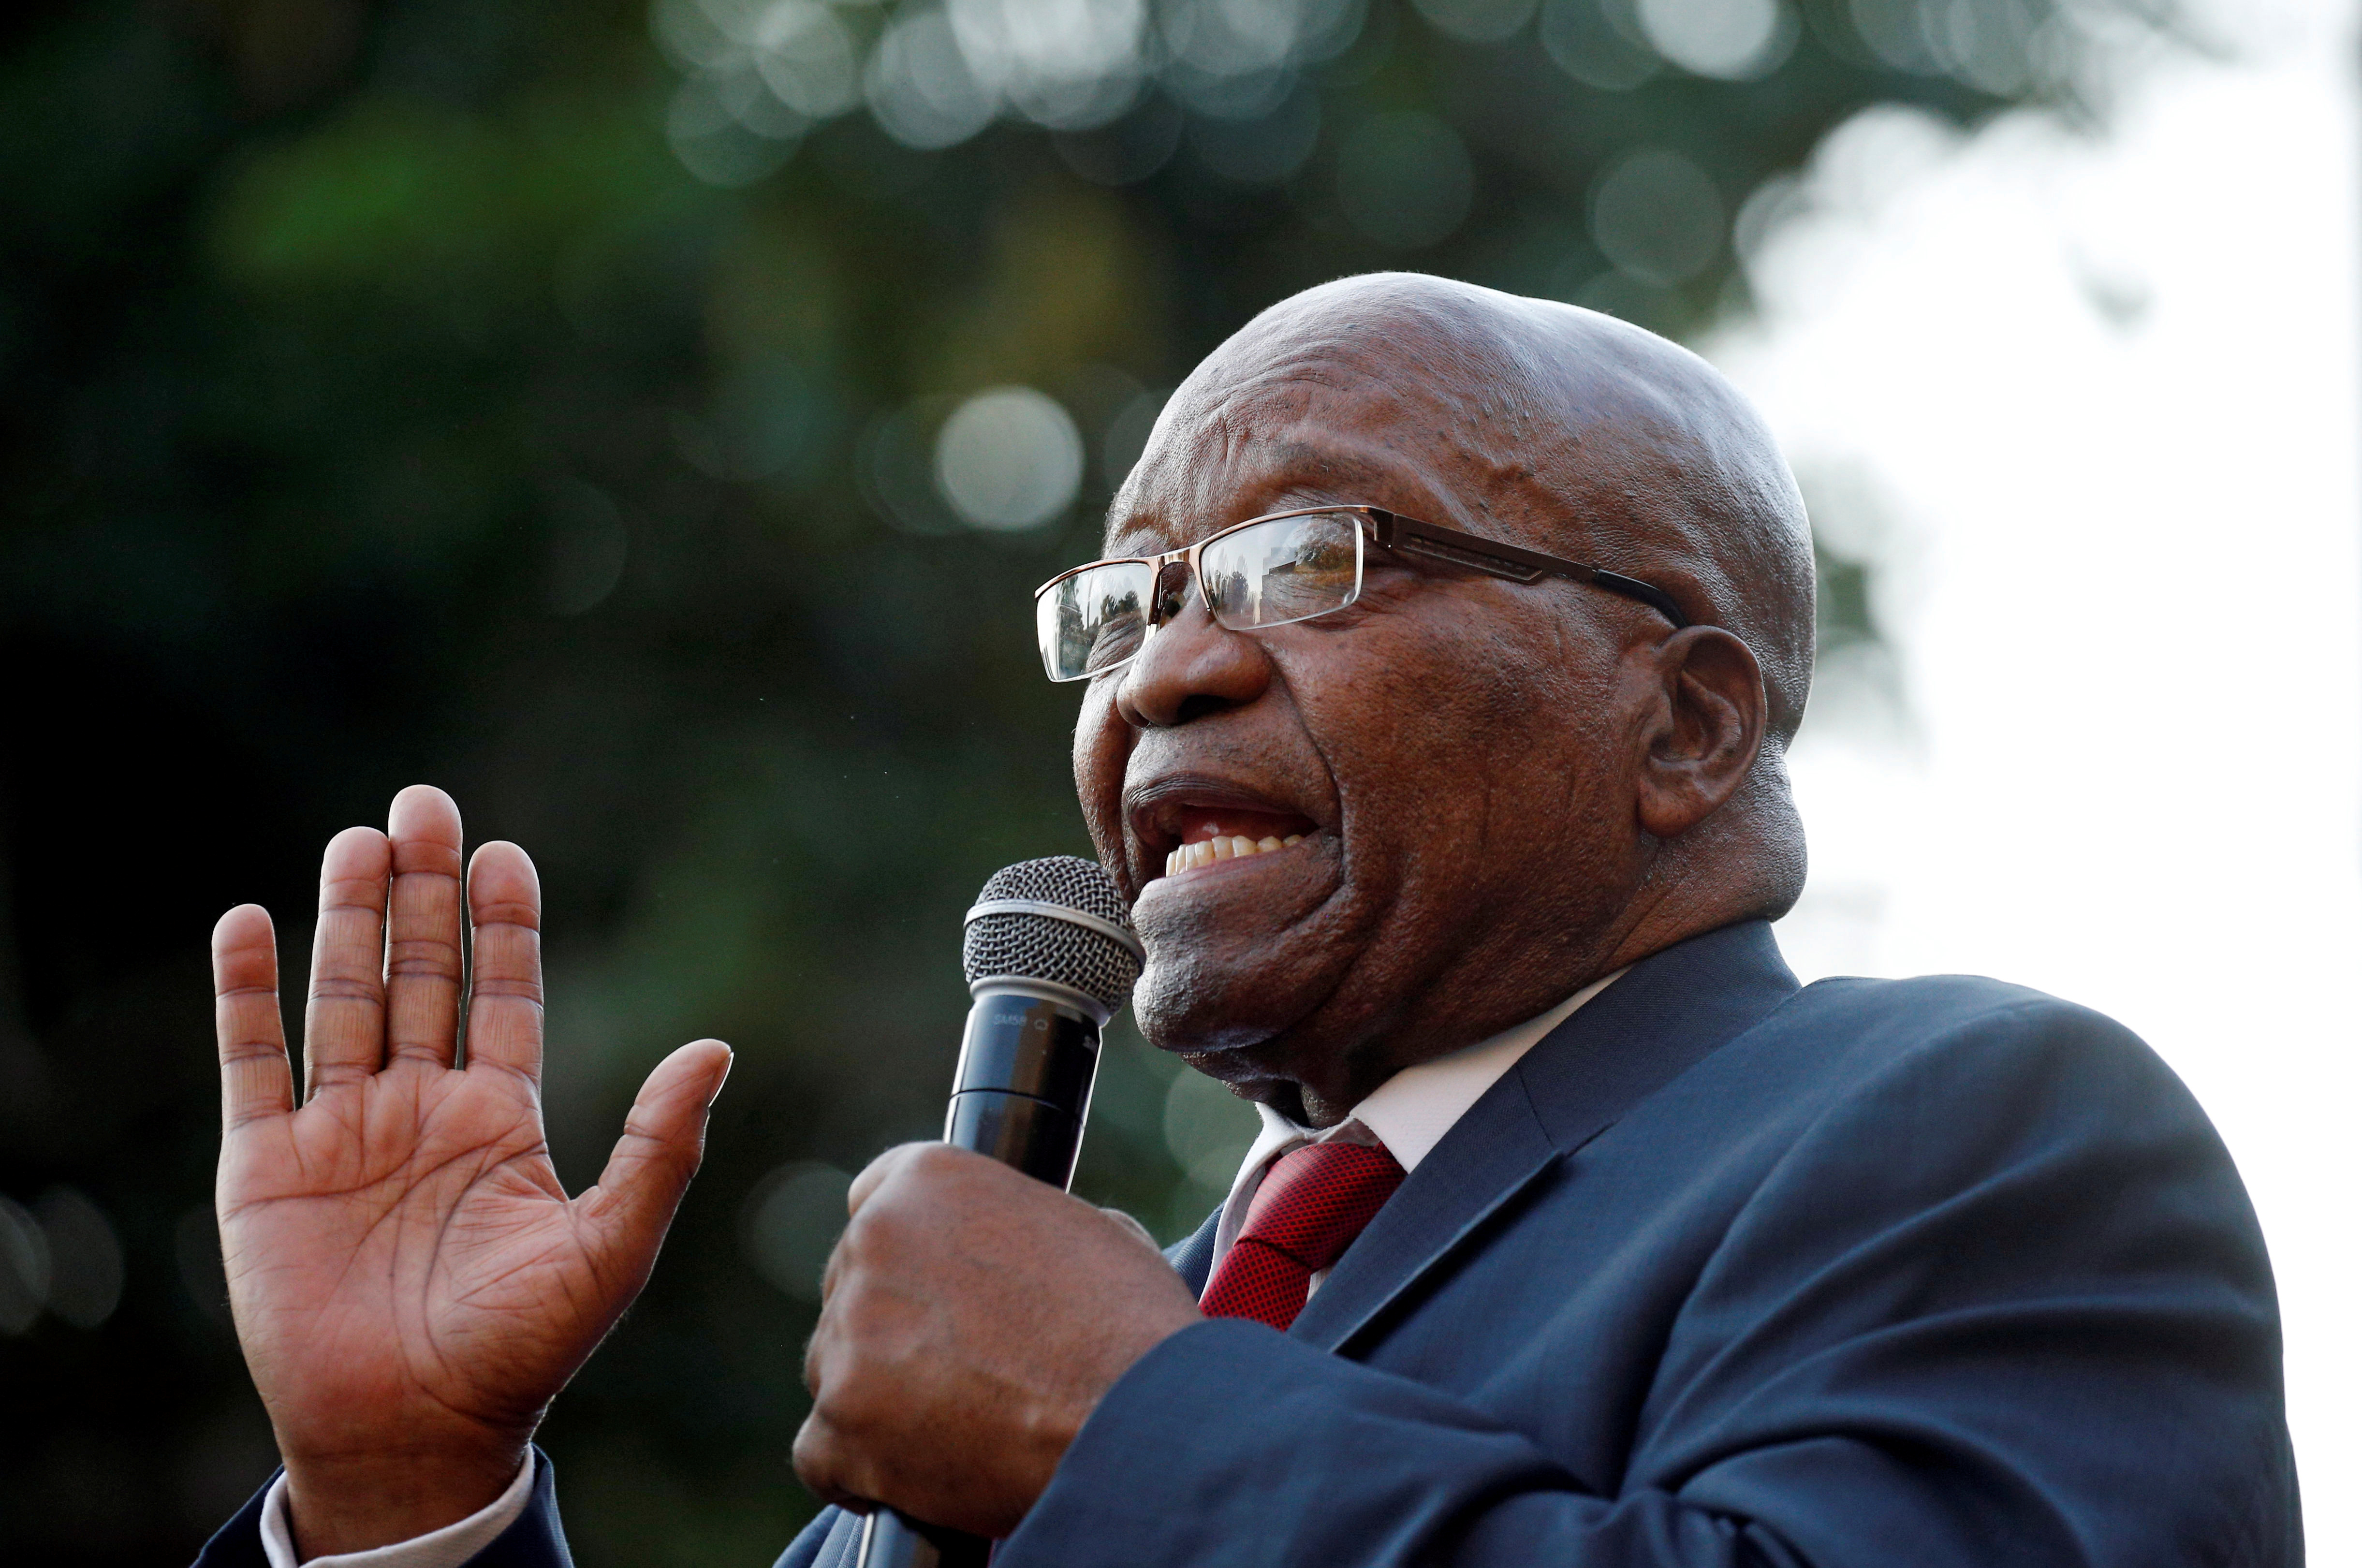 Lawyers for South Africa's Zuma tell court he is being treated unfairly